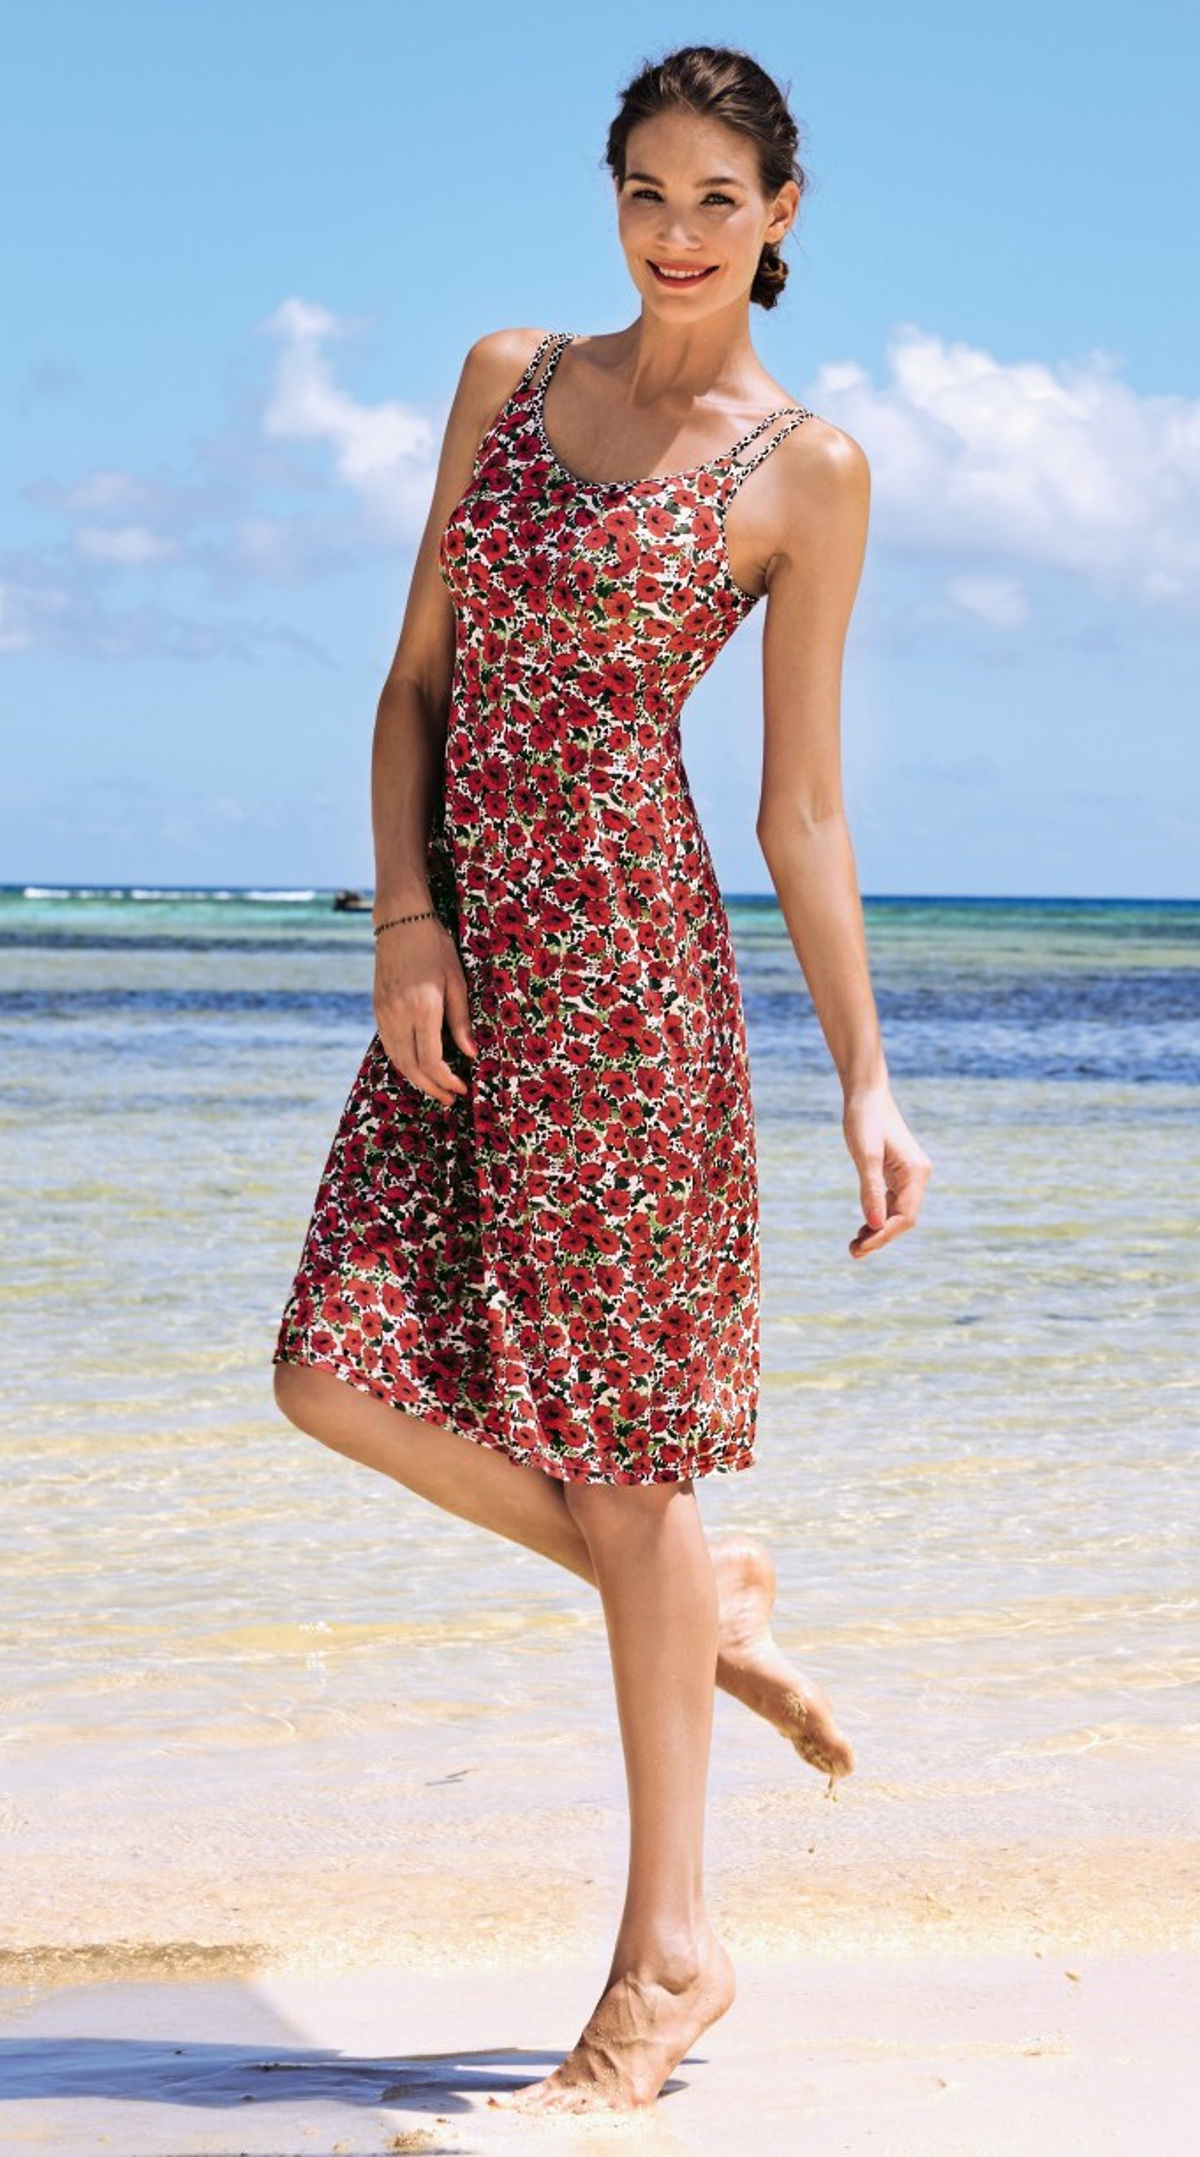 94504199d40 ... Anita care cute beach dress with red flowers and breast form pockets  for silicone prostheses on